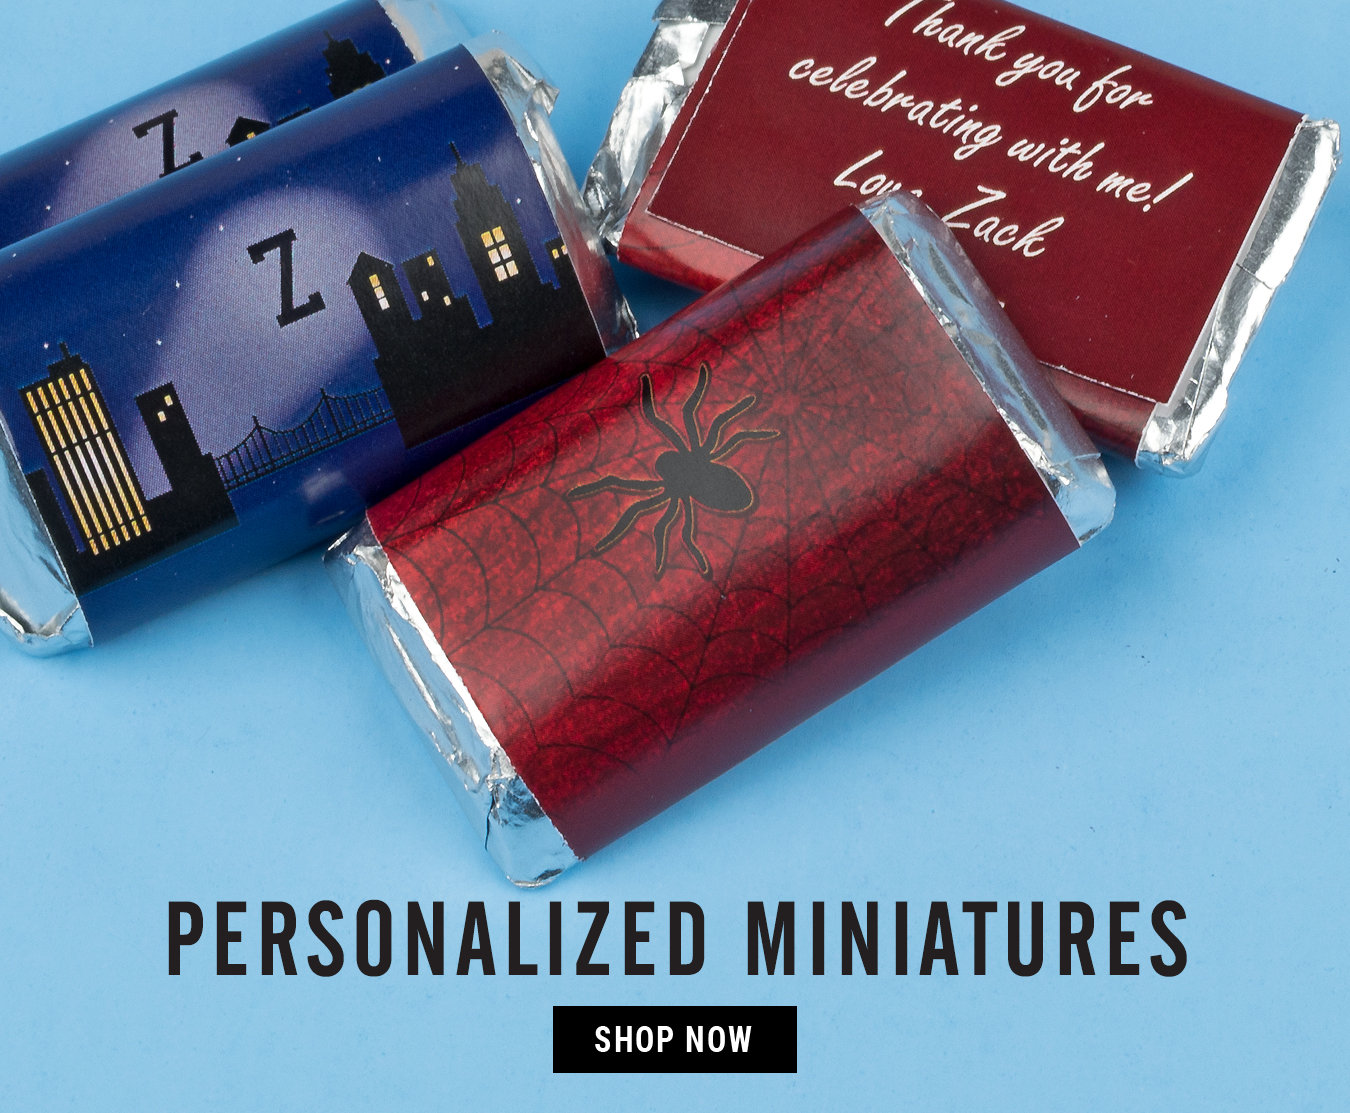 Personalized Miniatures